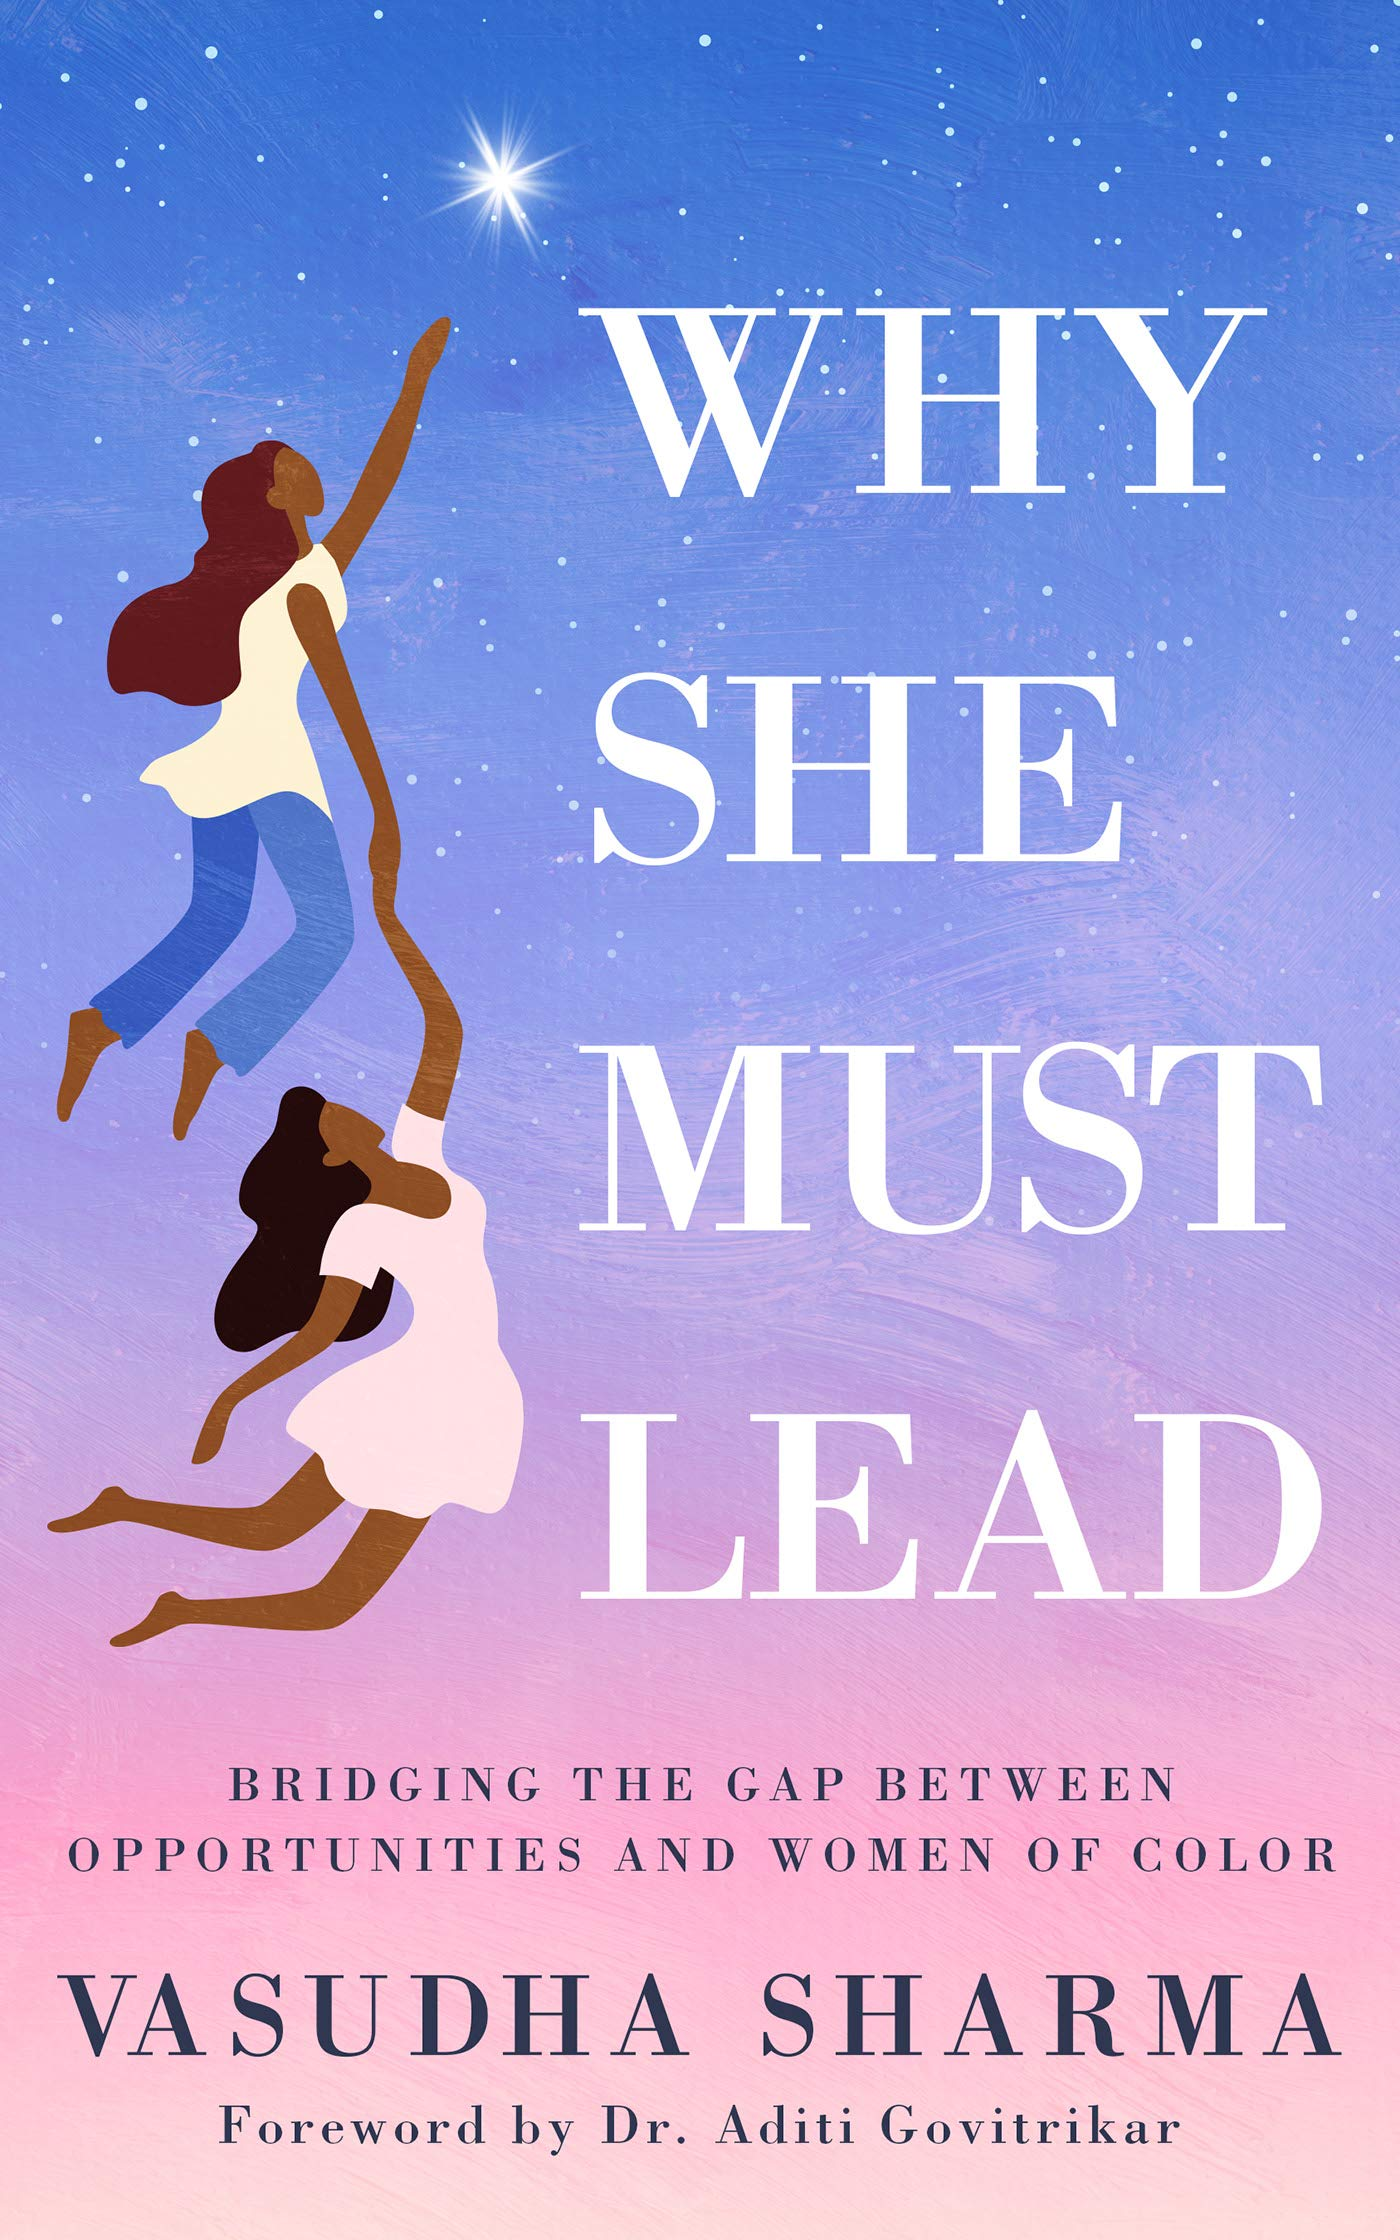 Why She Must Lead: Bridging the Gap Between Opportunities and Women of Color